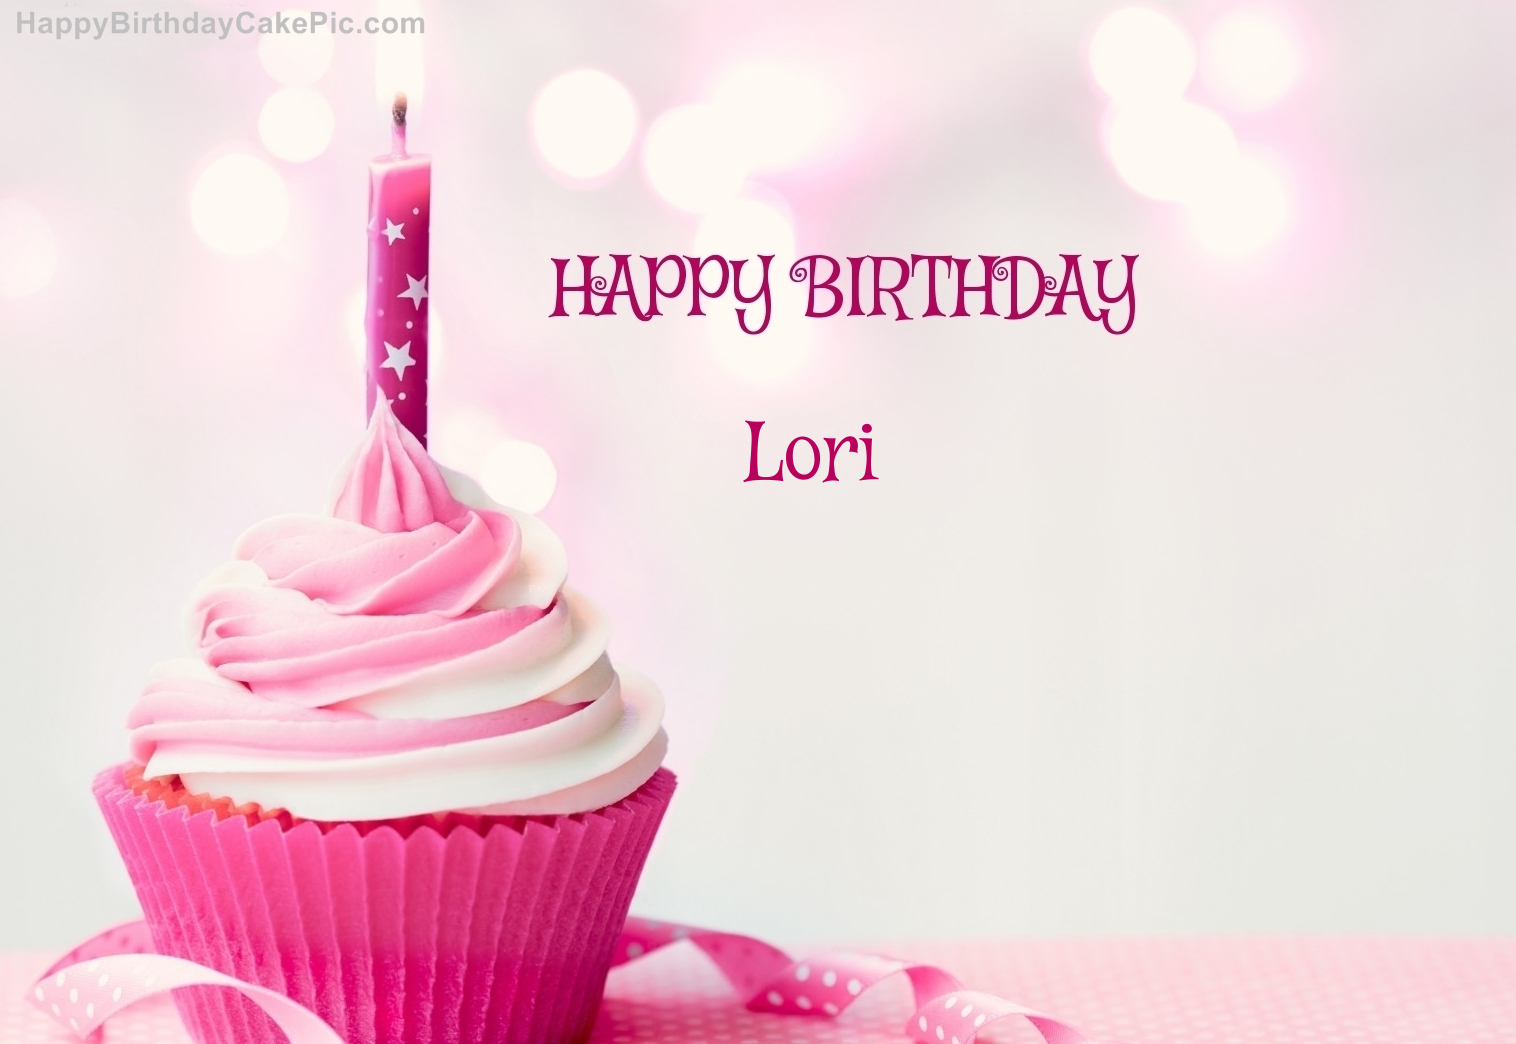 Happy Birthday Cupcake Candle Pink Cake For Lori